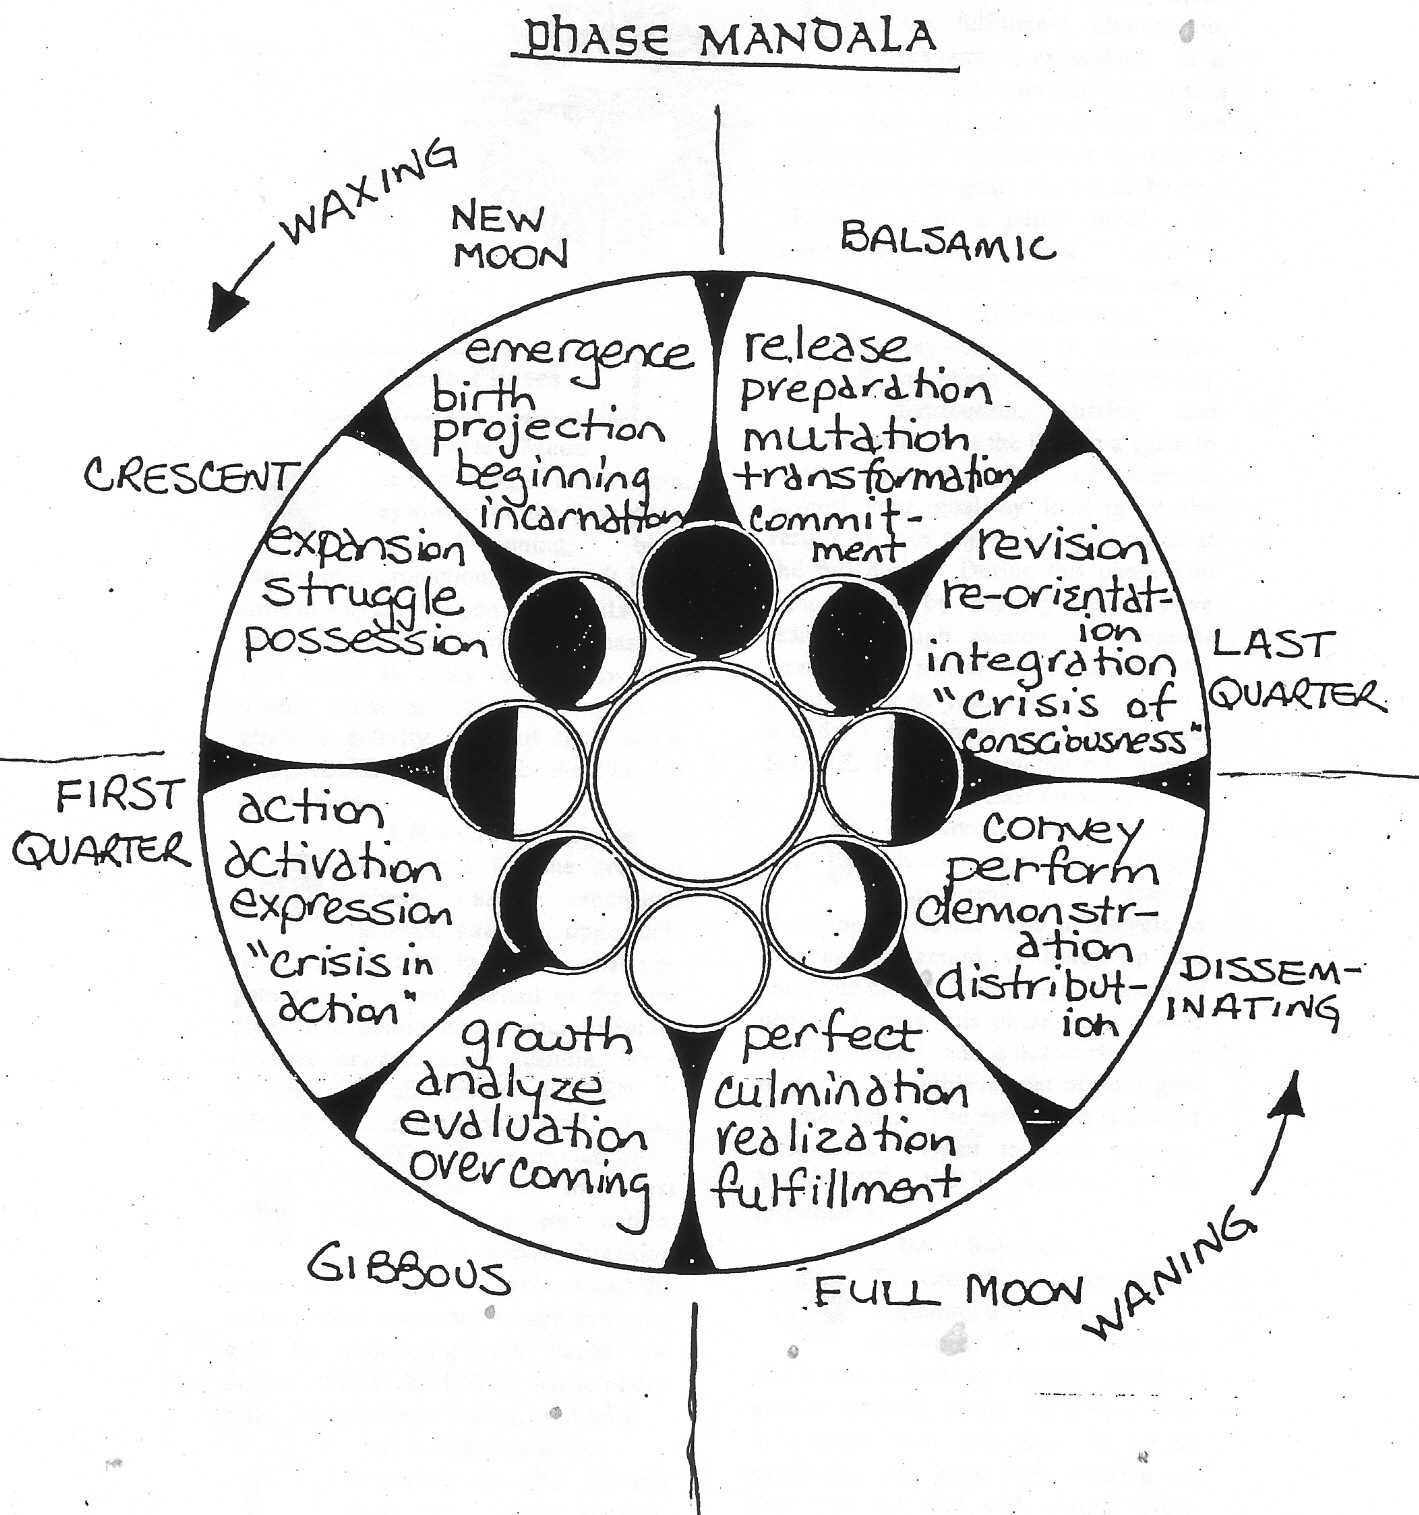 Charting The Moon Phases Diagram Phase Mandala Add Outer Circles For Other Charts Day Inside